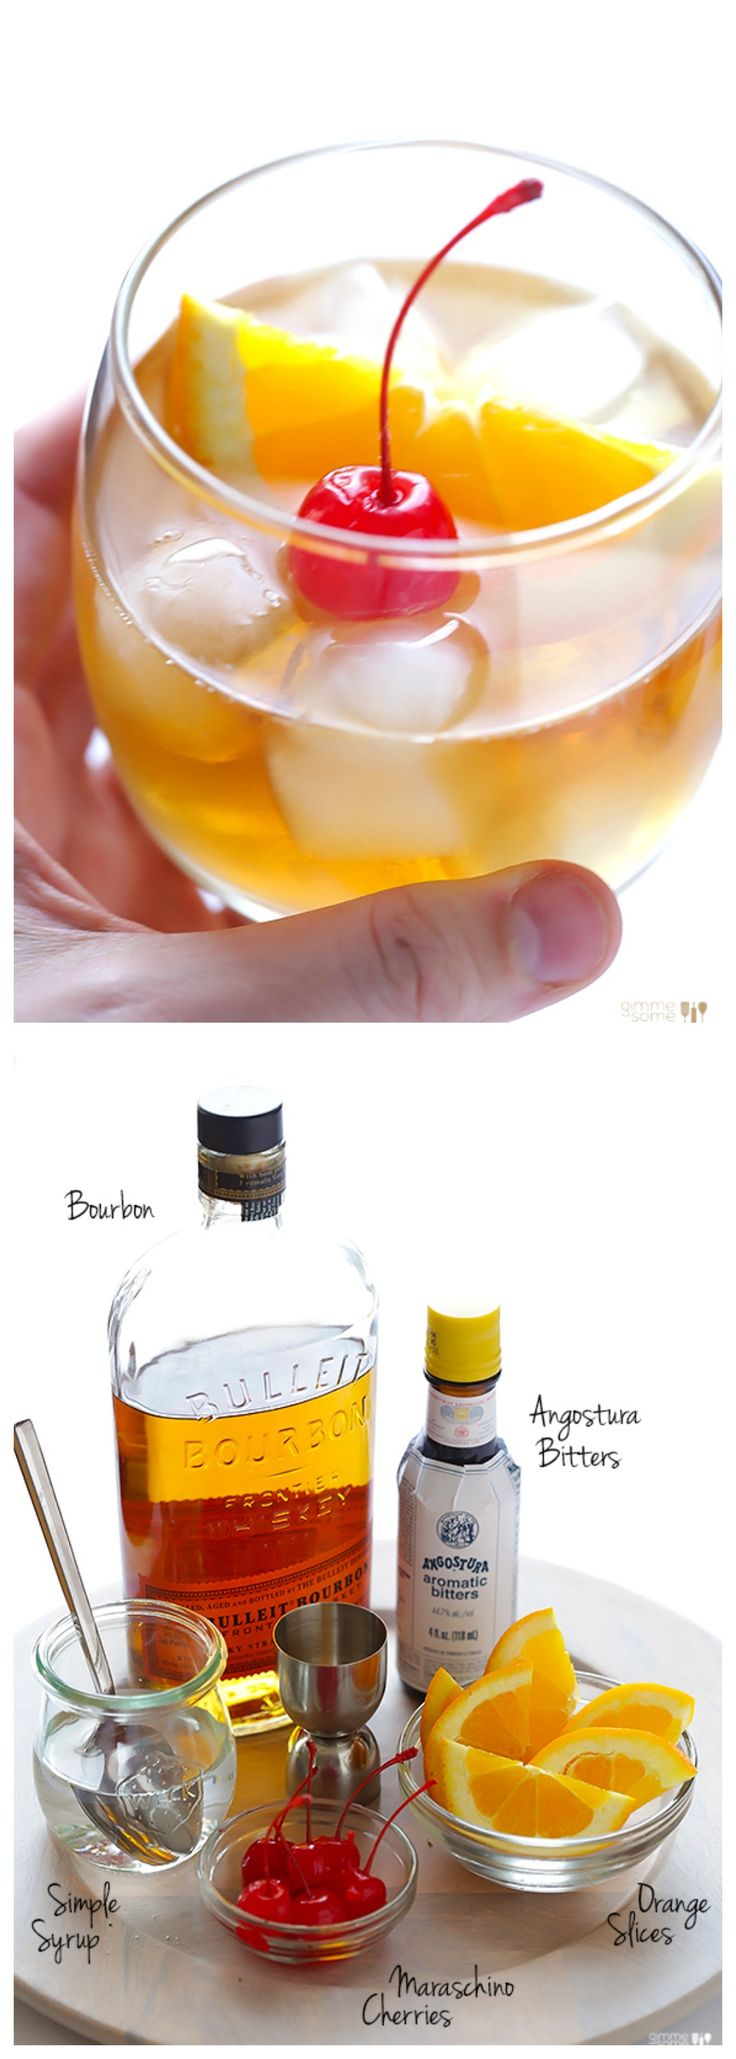 How to make an Old Fashioned Cocktail -- a step-by-step guide to making this classic drink | gimmesomeoven.com